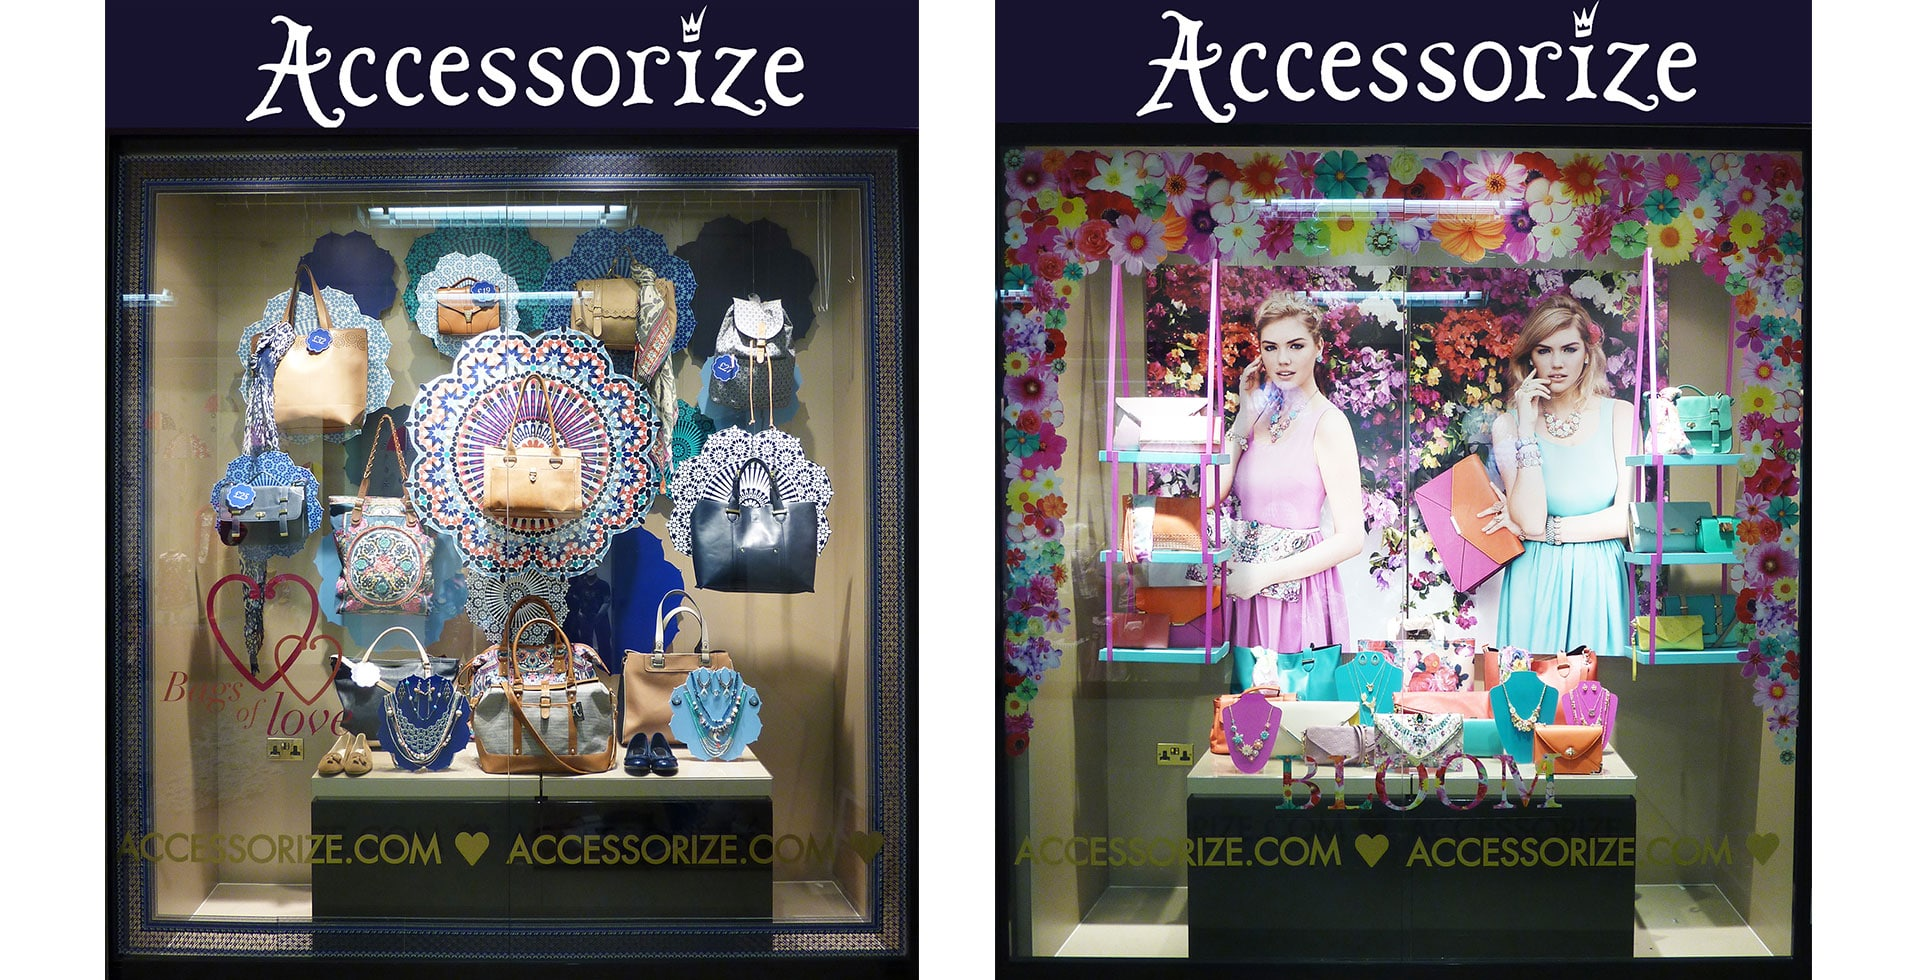 Accessorize windows